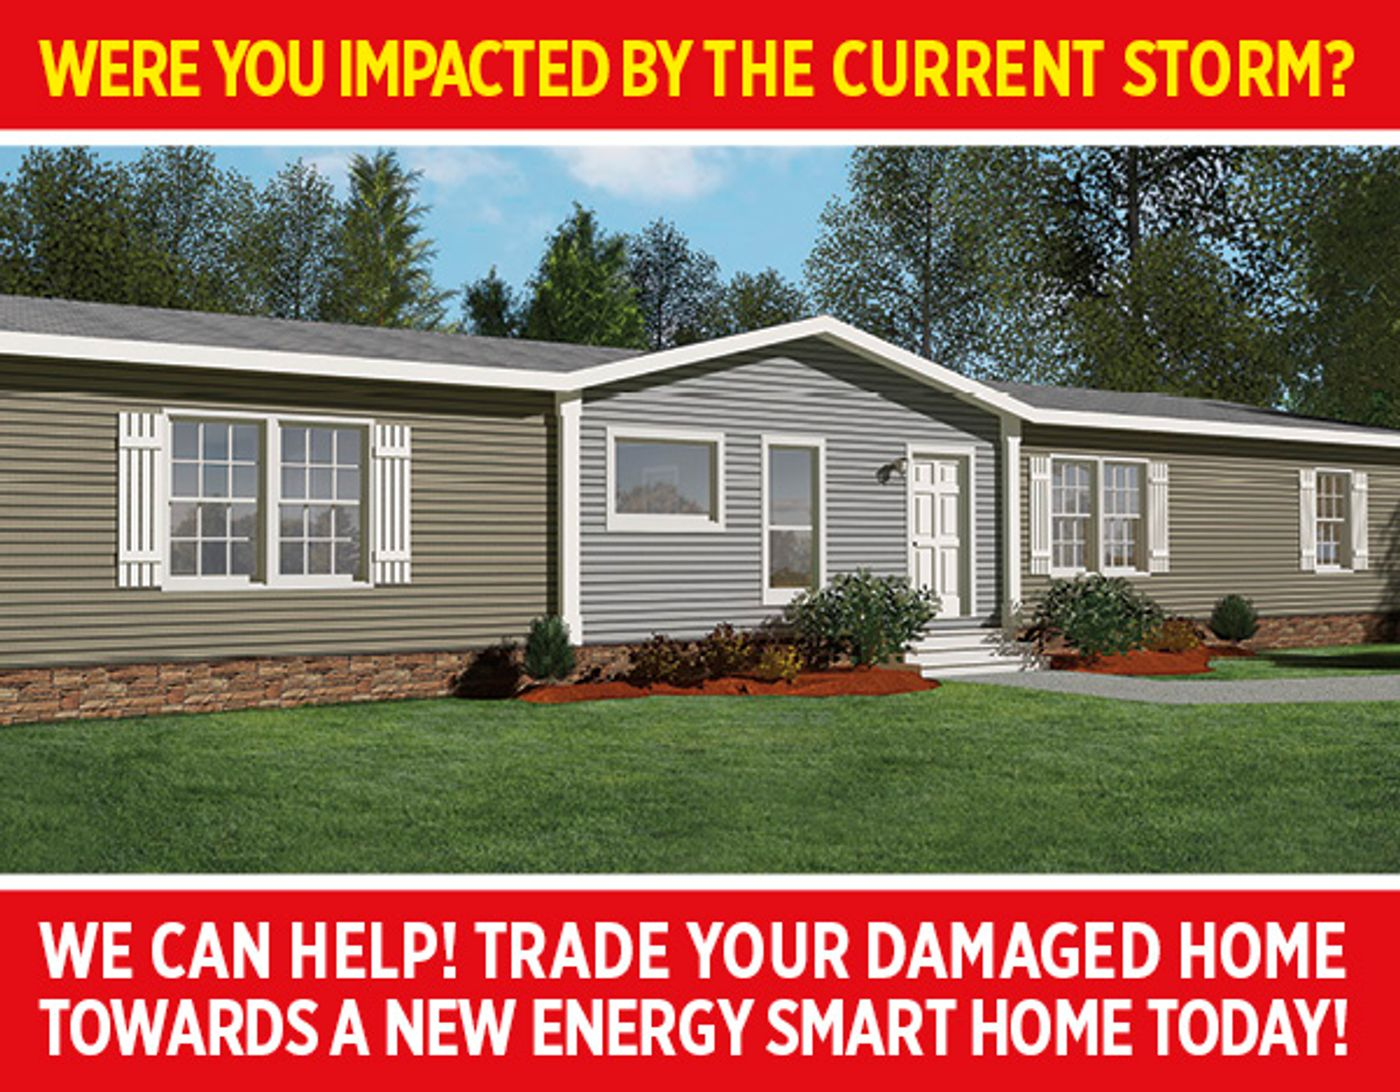 Trade your Used or Storm Damaged Home Towards a New Energy Smart Home Today!